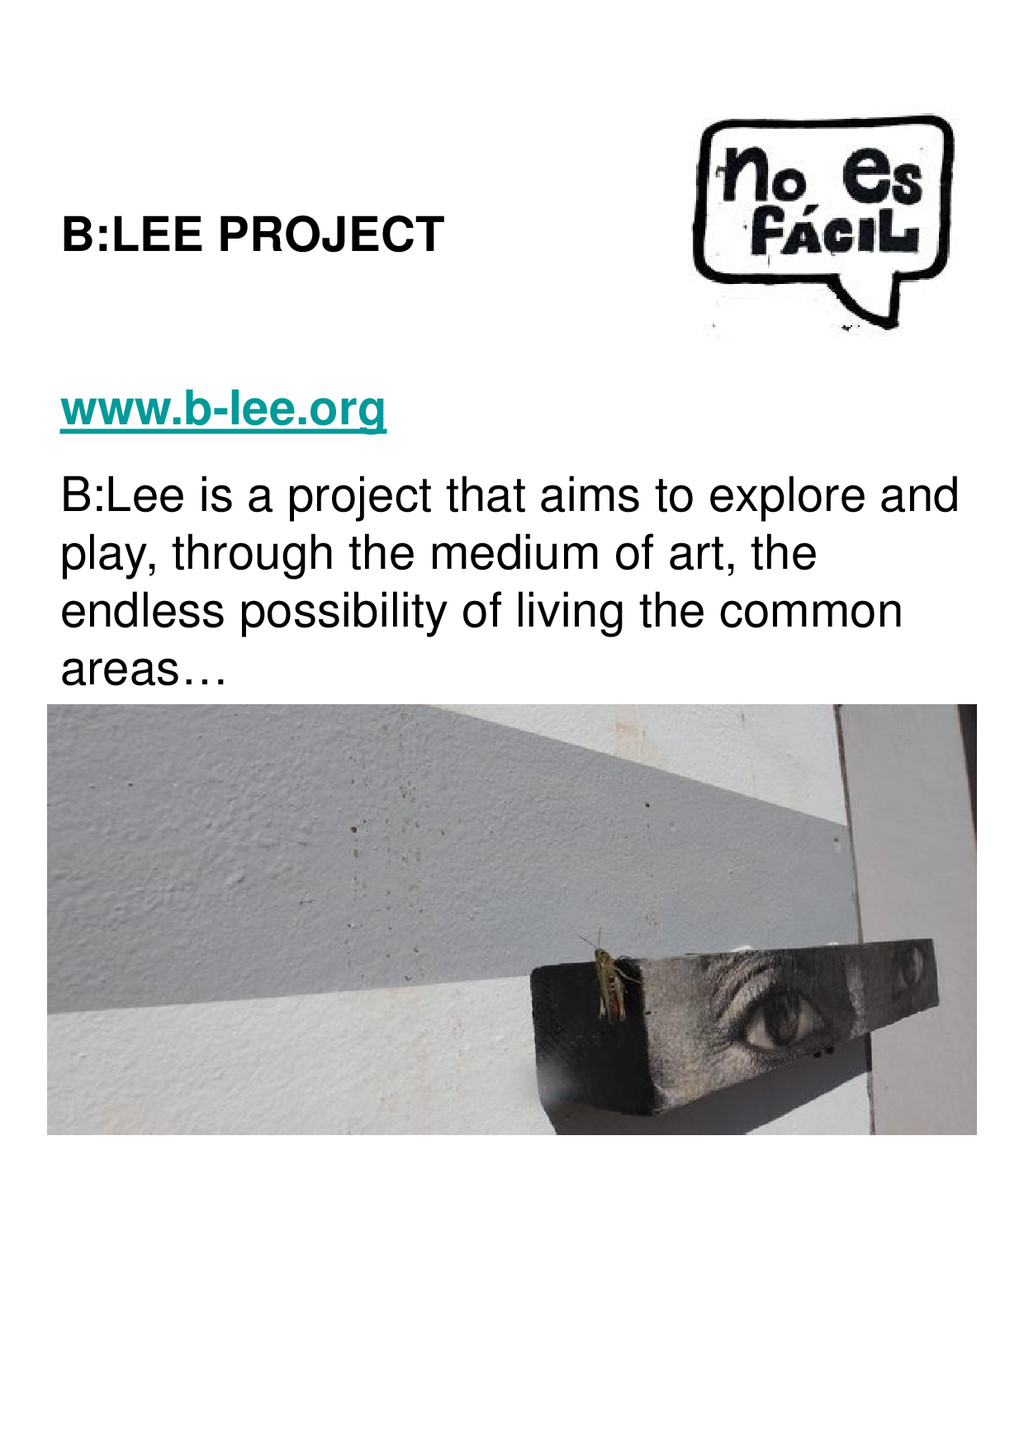 B:LEE PROJECT www.b-lee.org B:Lee is a project ...